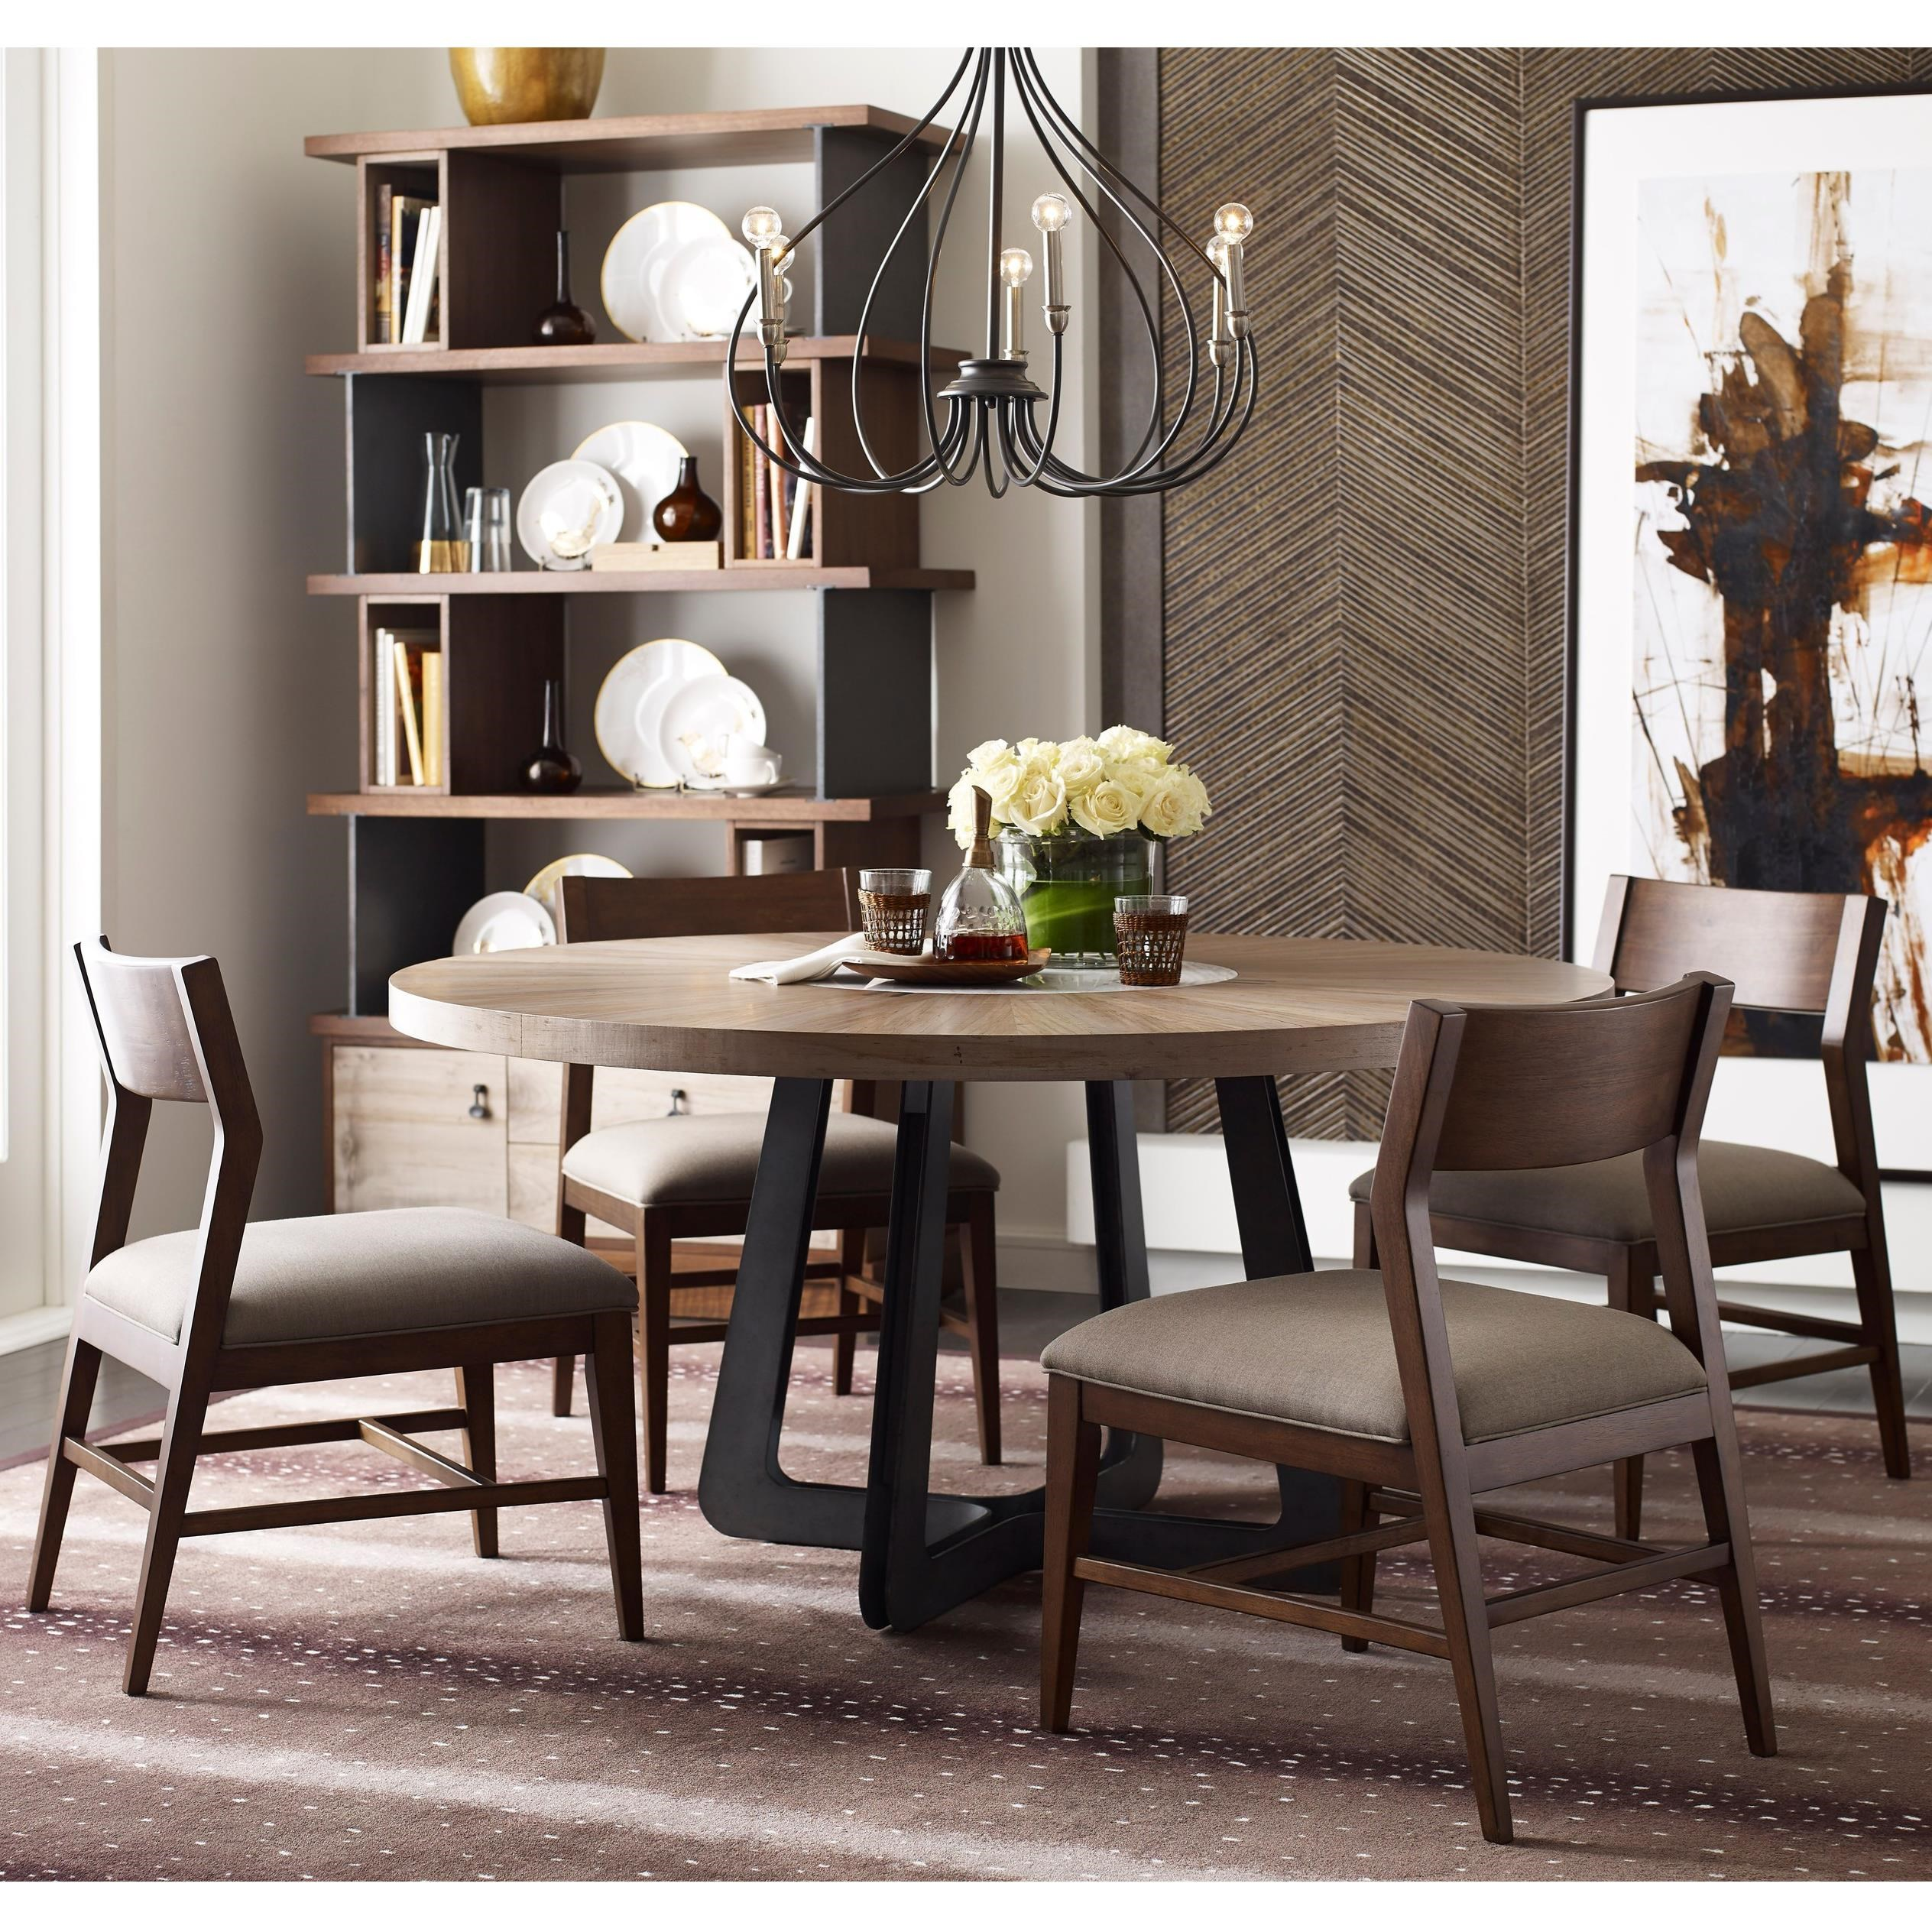 Modern Synergy Round Table and Chair Set by American Drew at Alison Craig Home Furnishings